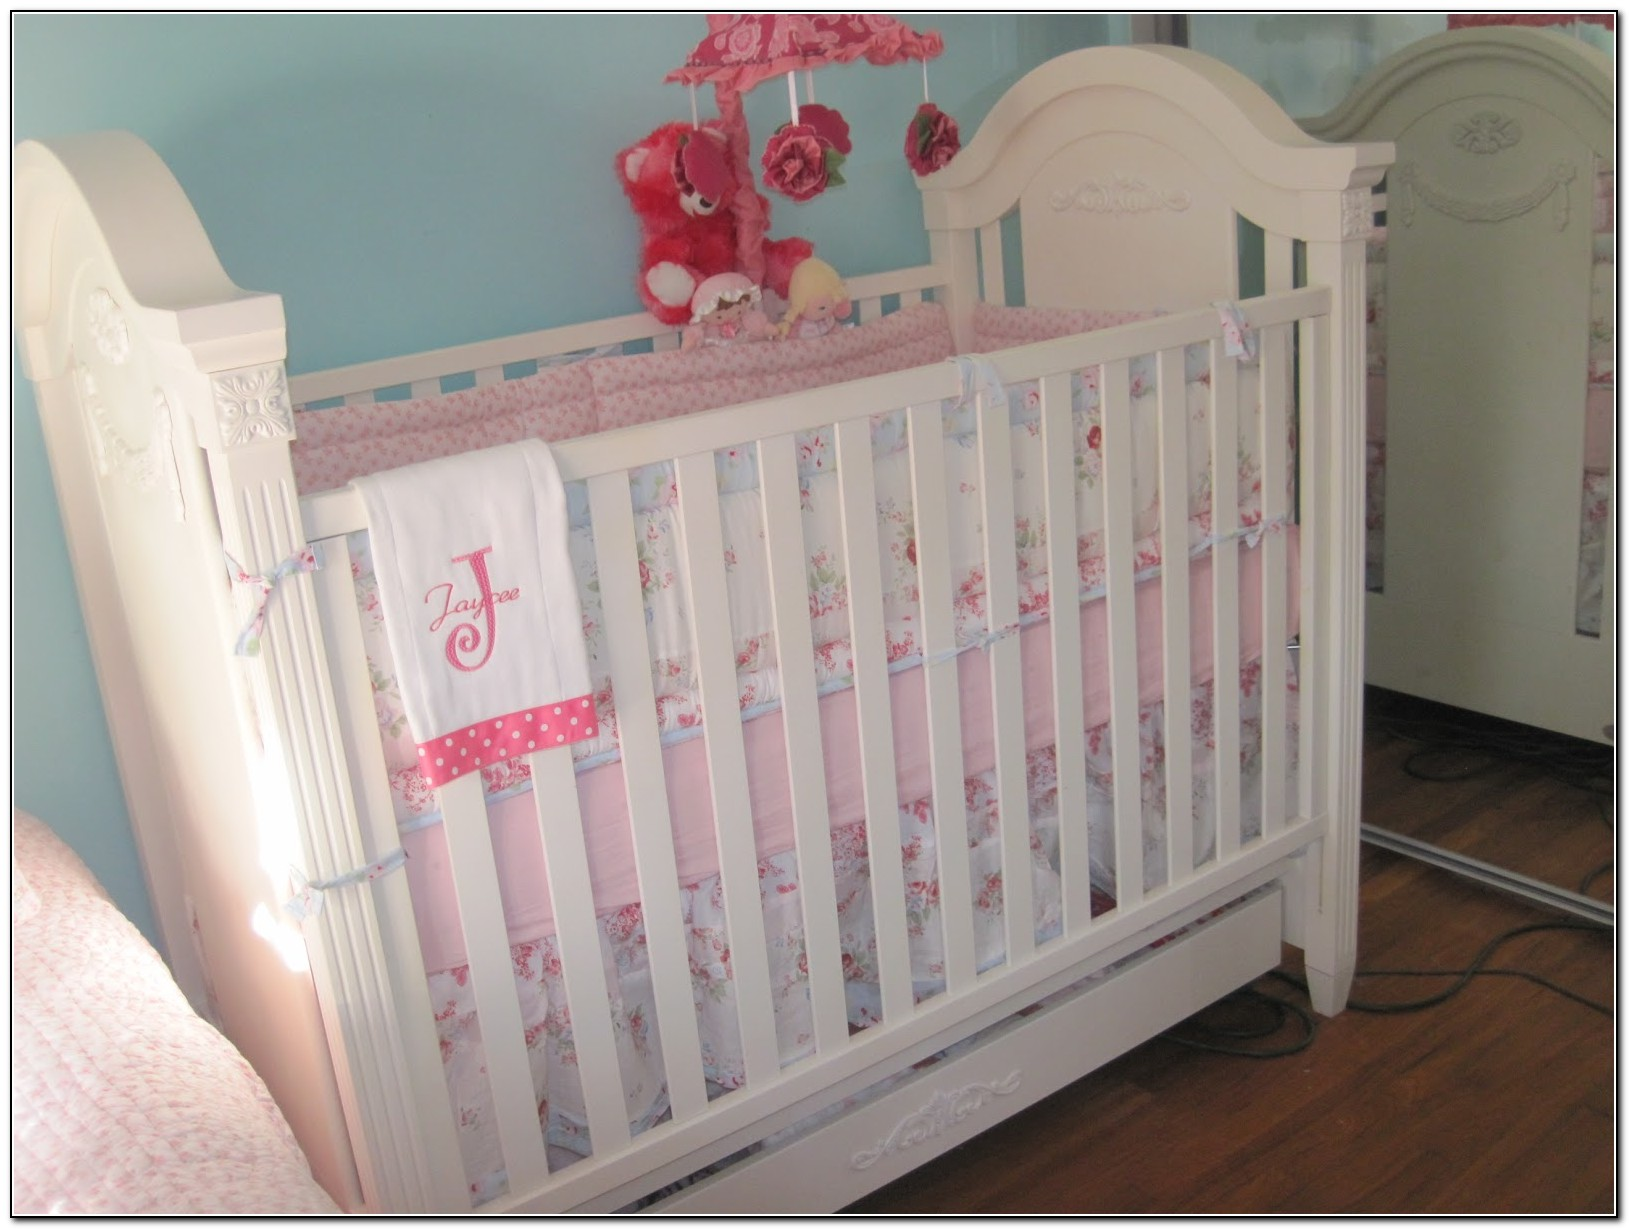 shabby chic baby bedding target beds home design ideas k6dzk6eqj210258. Black Bedroom Furniture Sets. Home Design Ideas